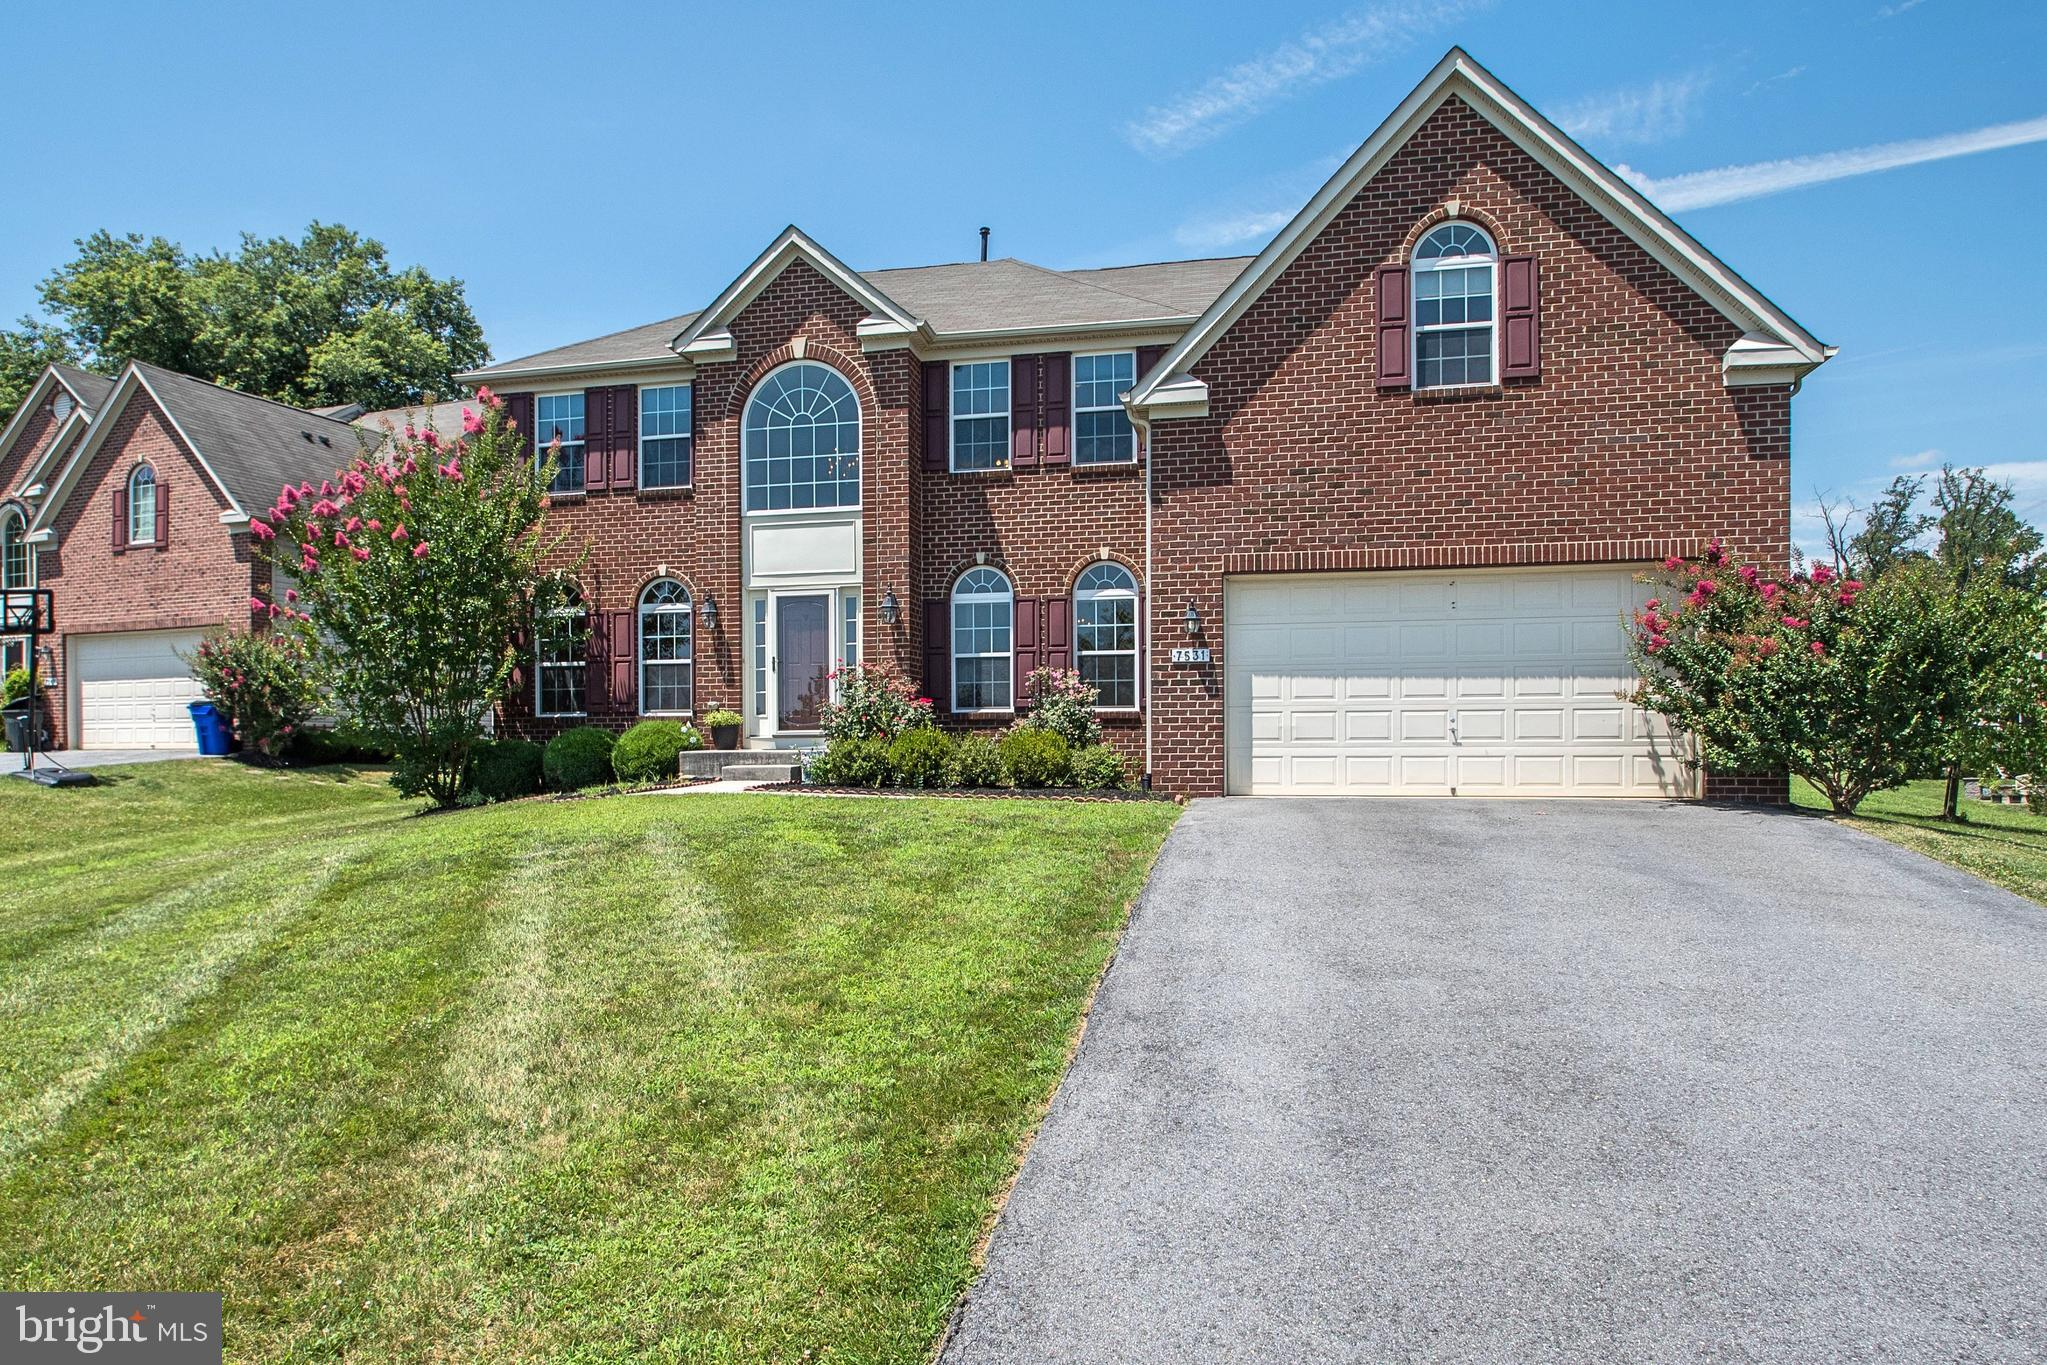 7531 TALBOTS WOODS COURT, ELLICOTT CITY, MD 21043